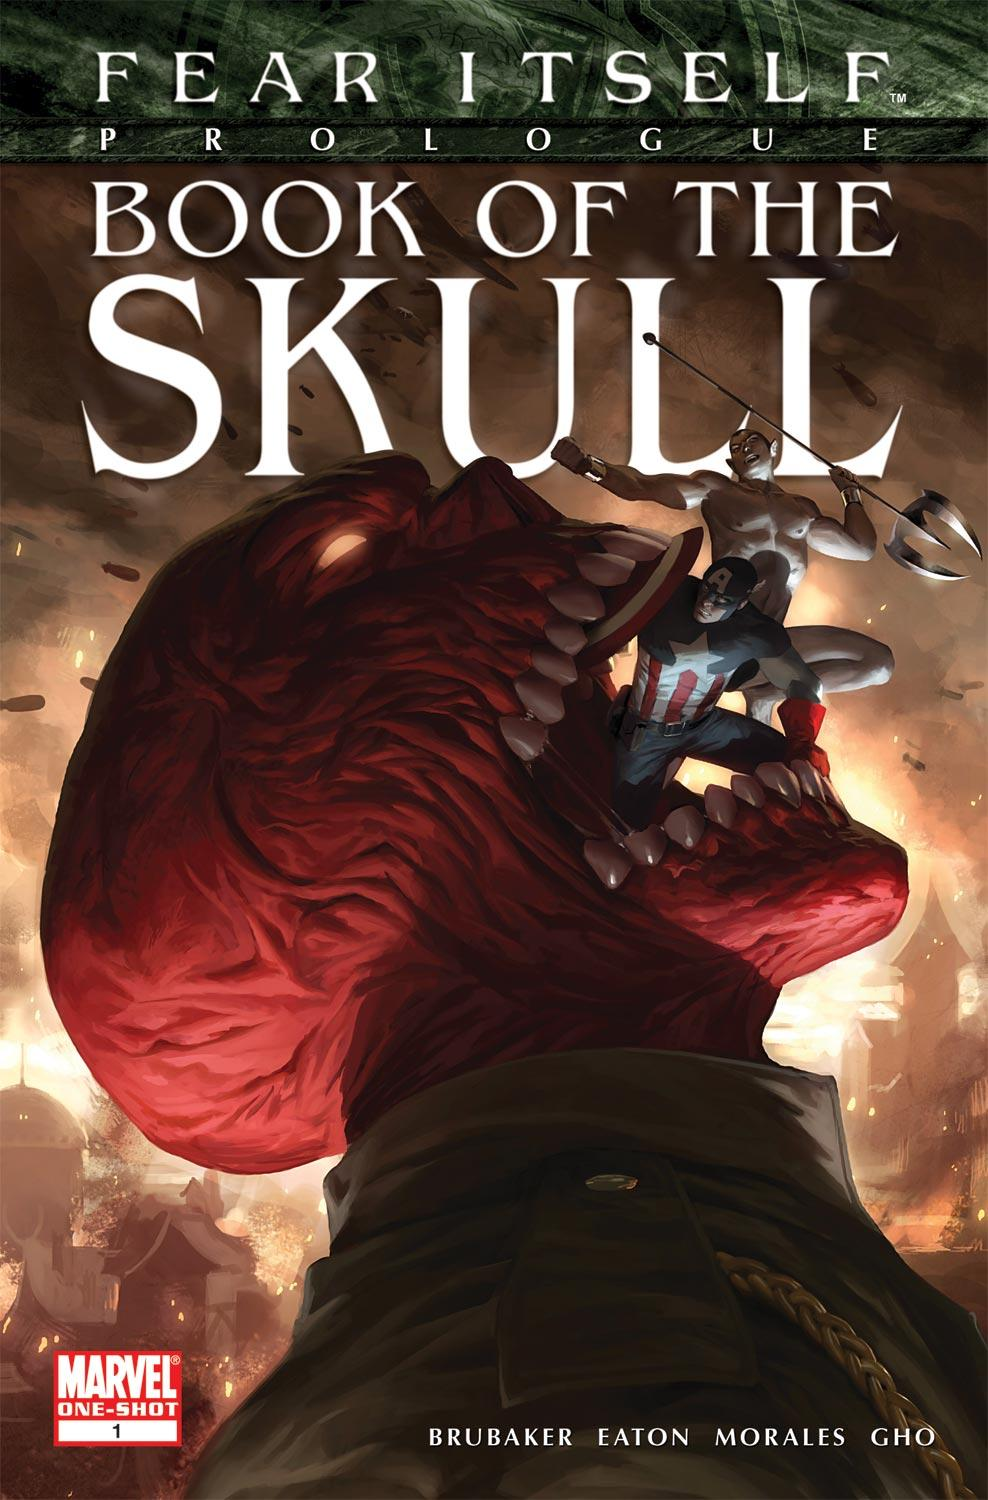 Fear Itself: The Book of the Skull (2011) #1